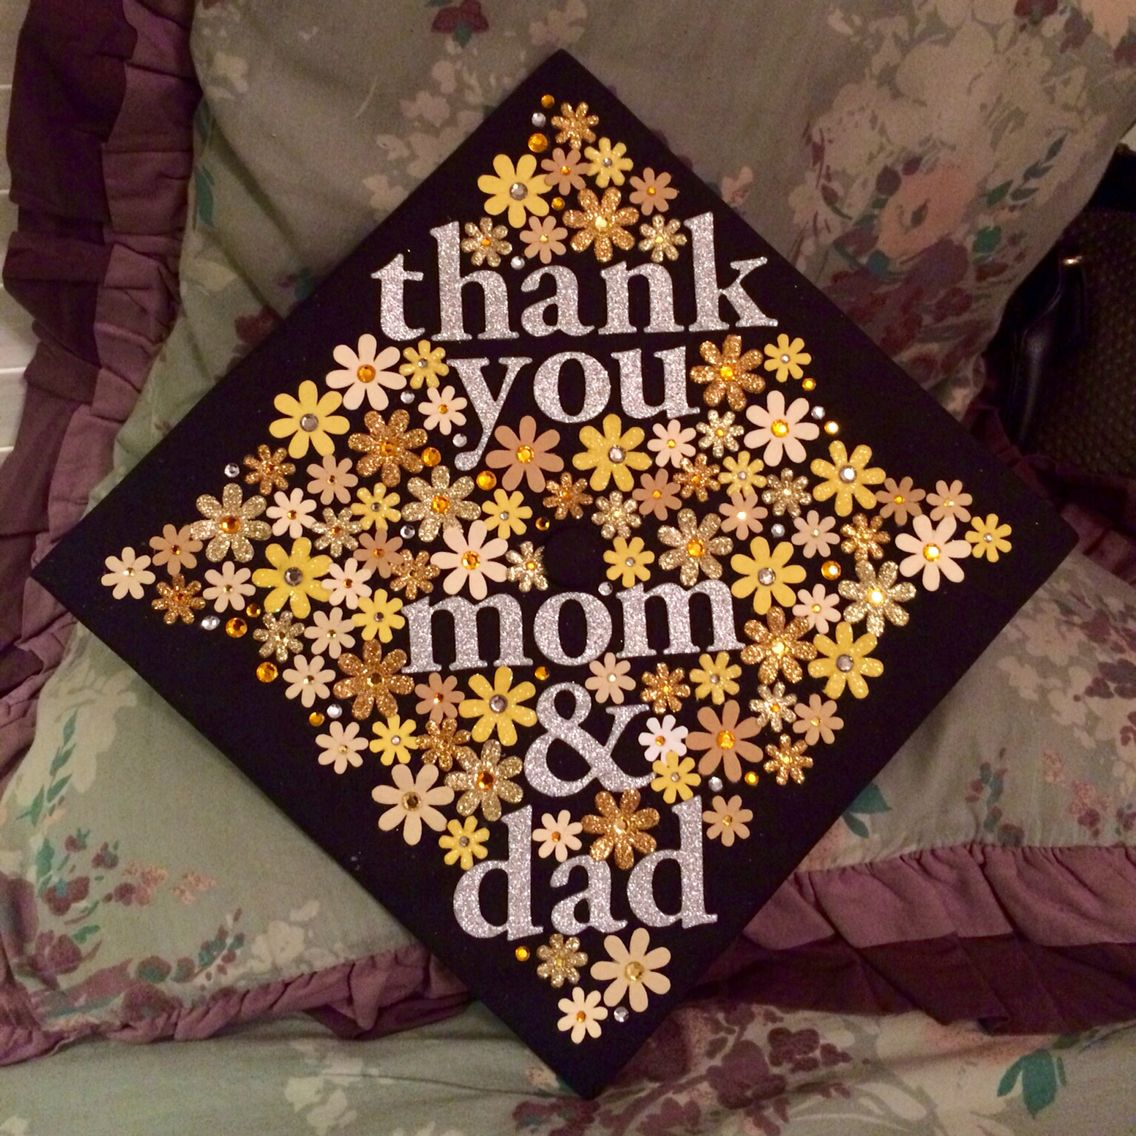 My graduation cap, class of 2016! Thank you mom and dad ...